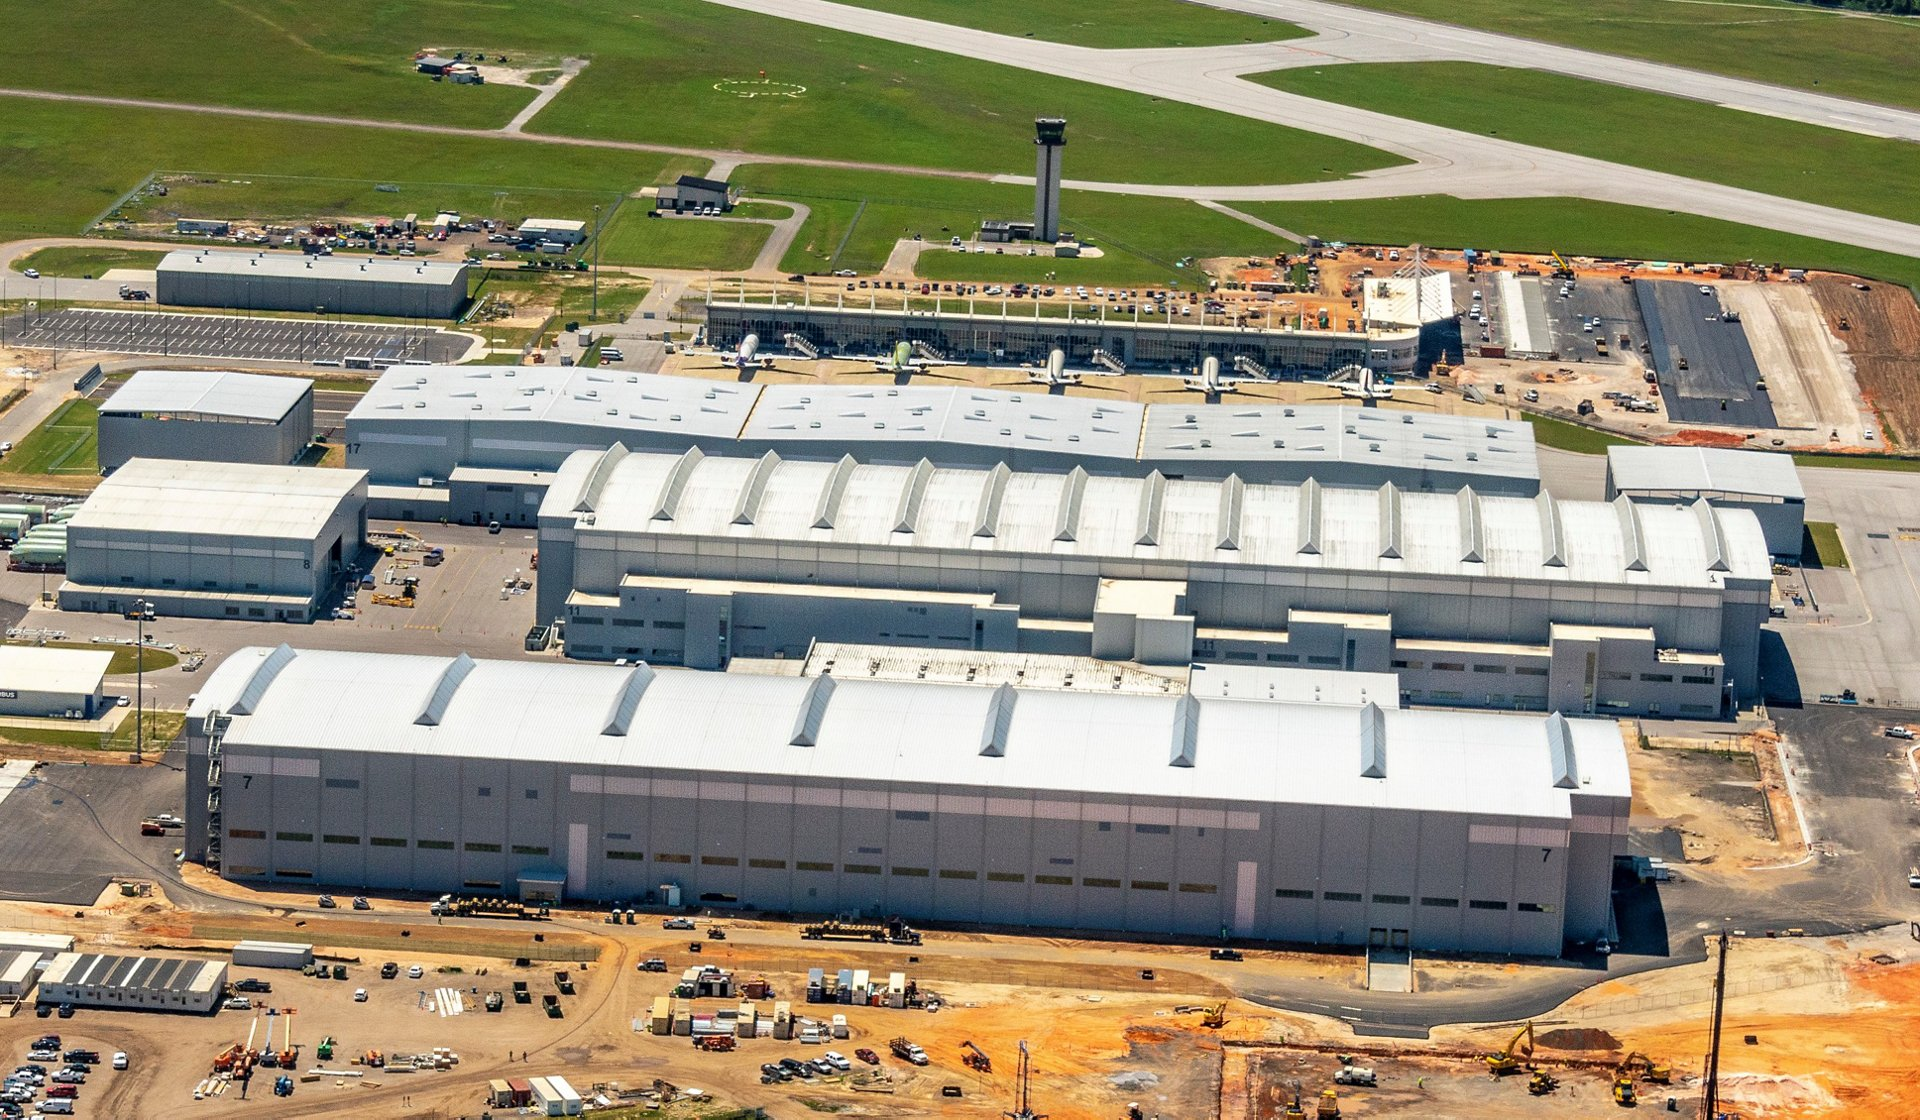 Airbus has inaugurated its A220 final assembly line in Mobile, Alabama, USA, for production of A220-100 and A220-300 aircraft versions